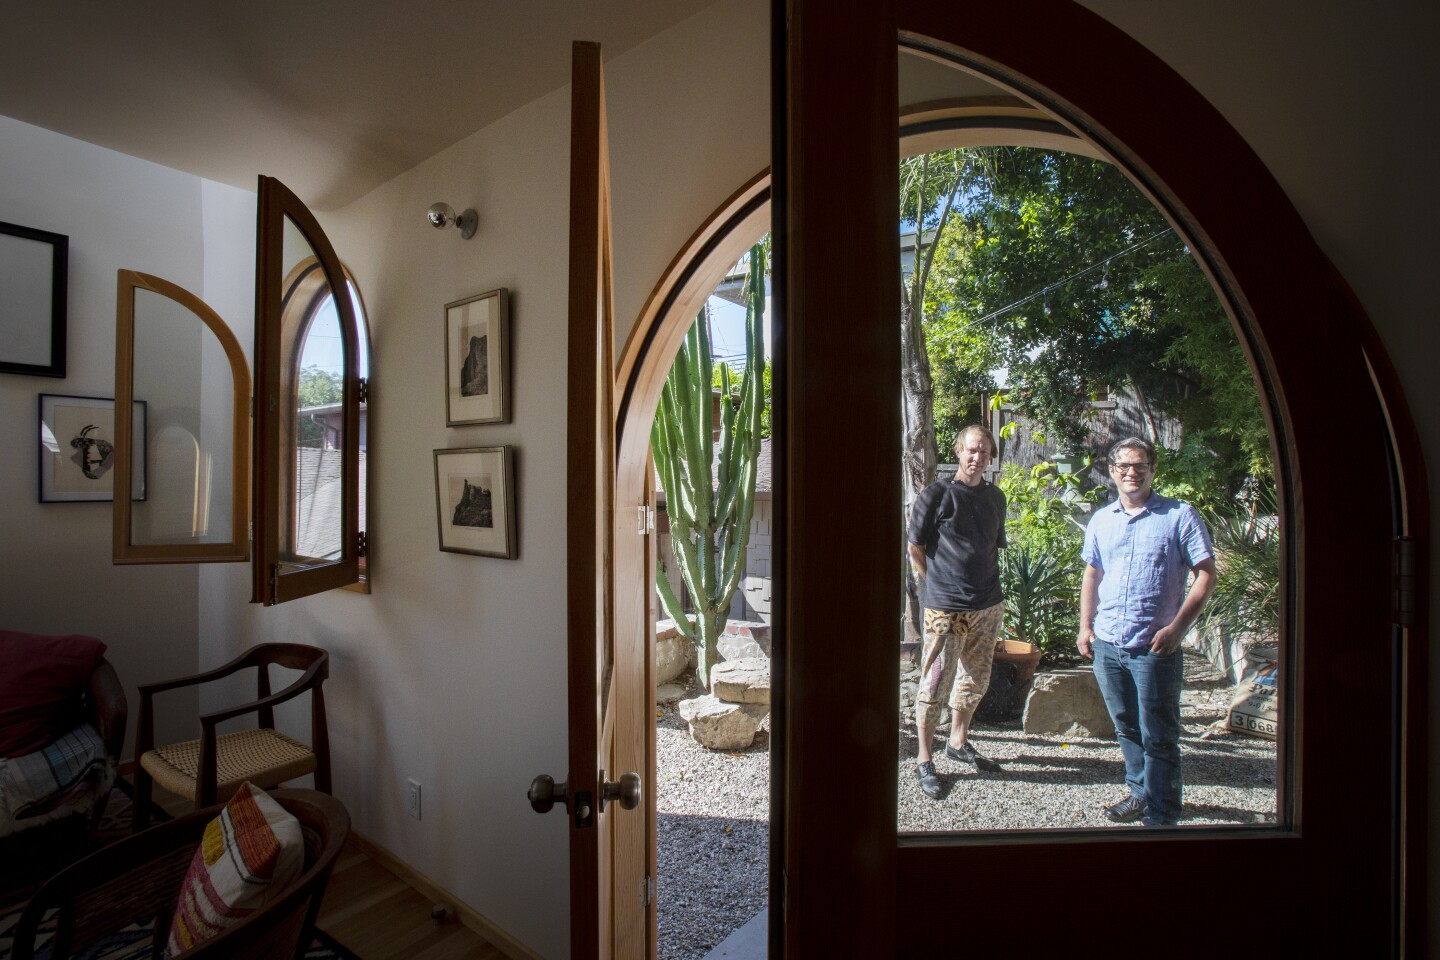 Two men stand outside a writing studio looking in, framed by an arched doorway.